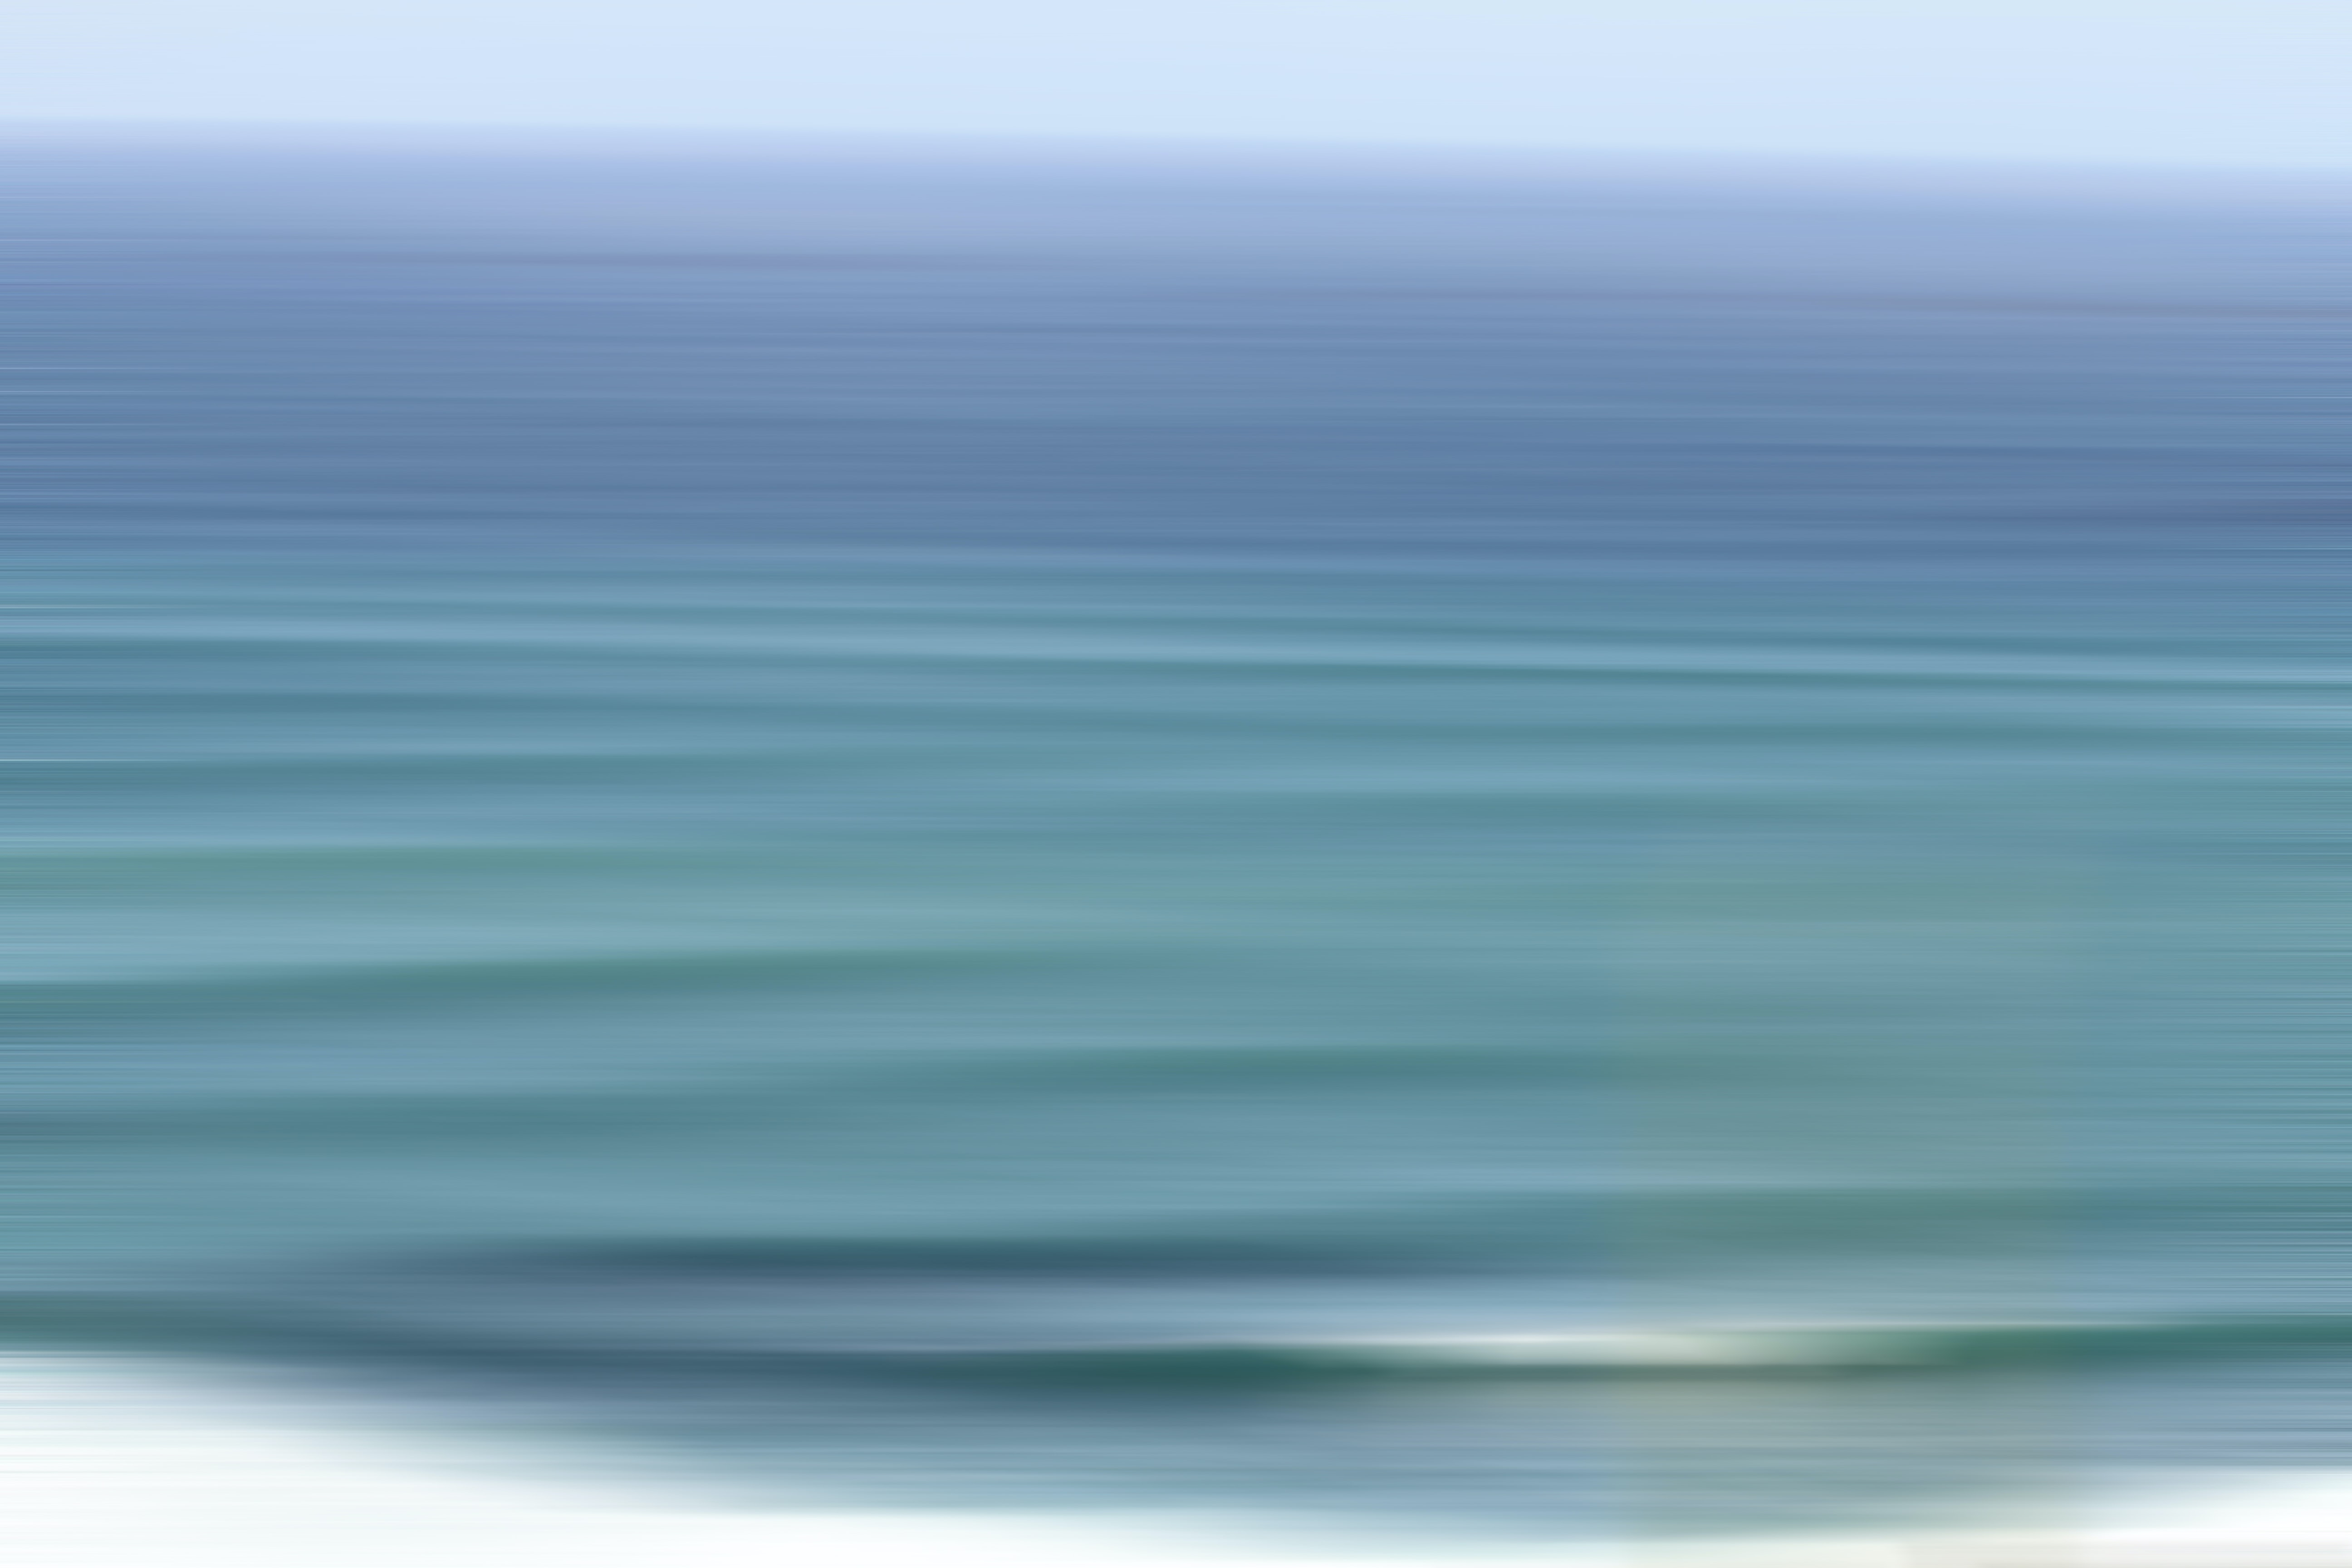 A blurred ocean picture.